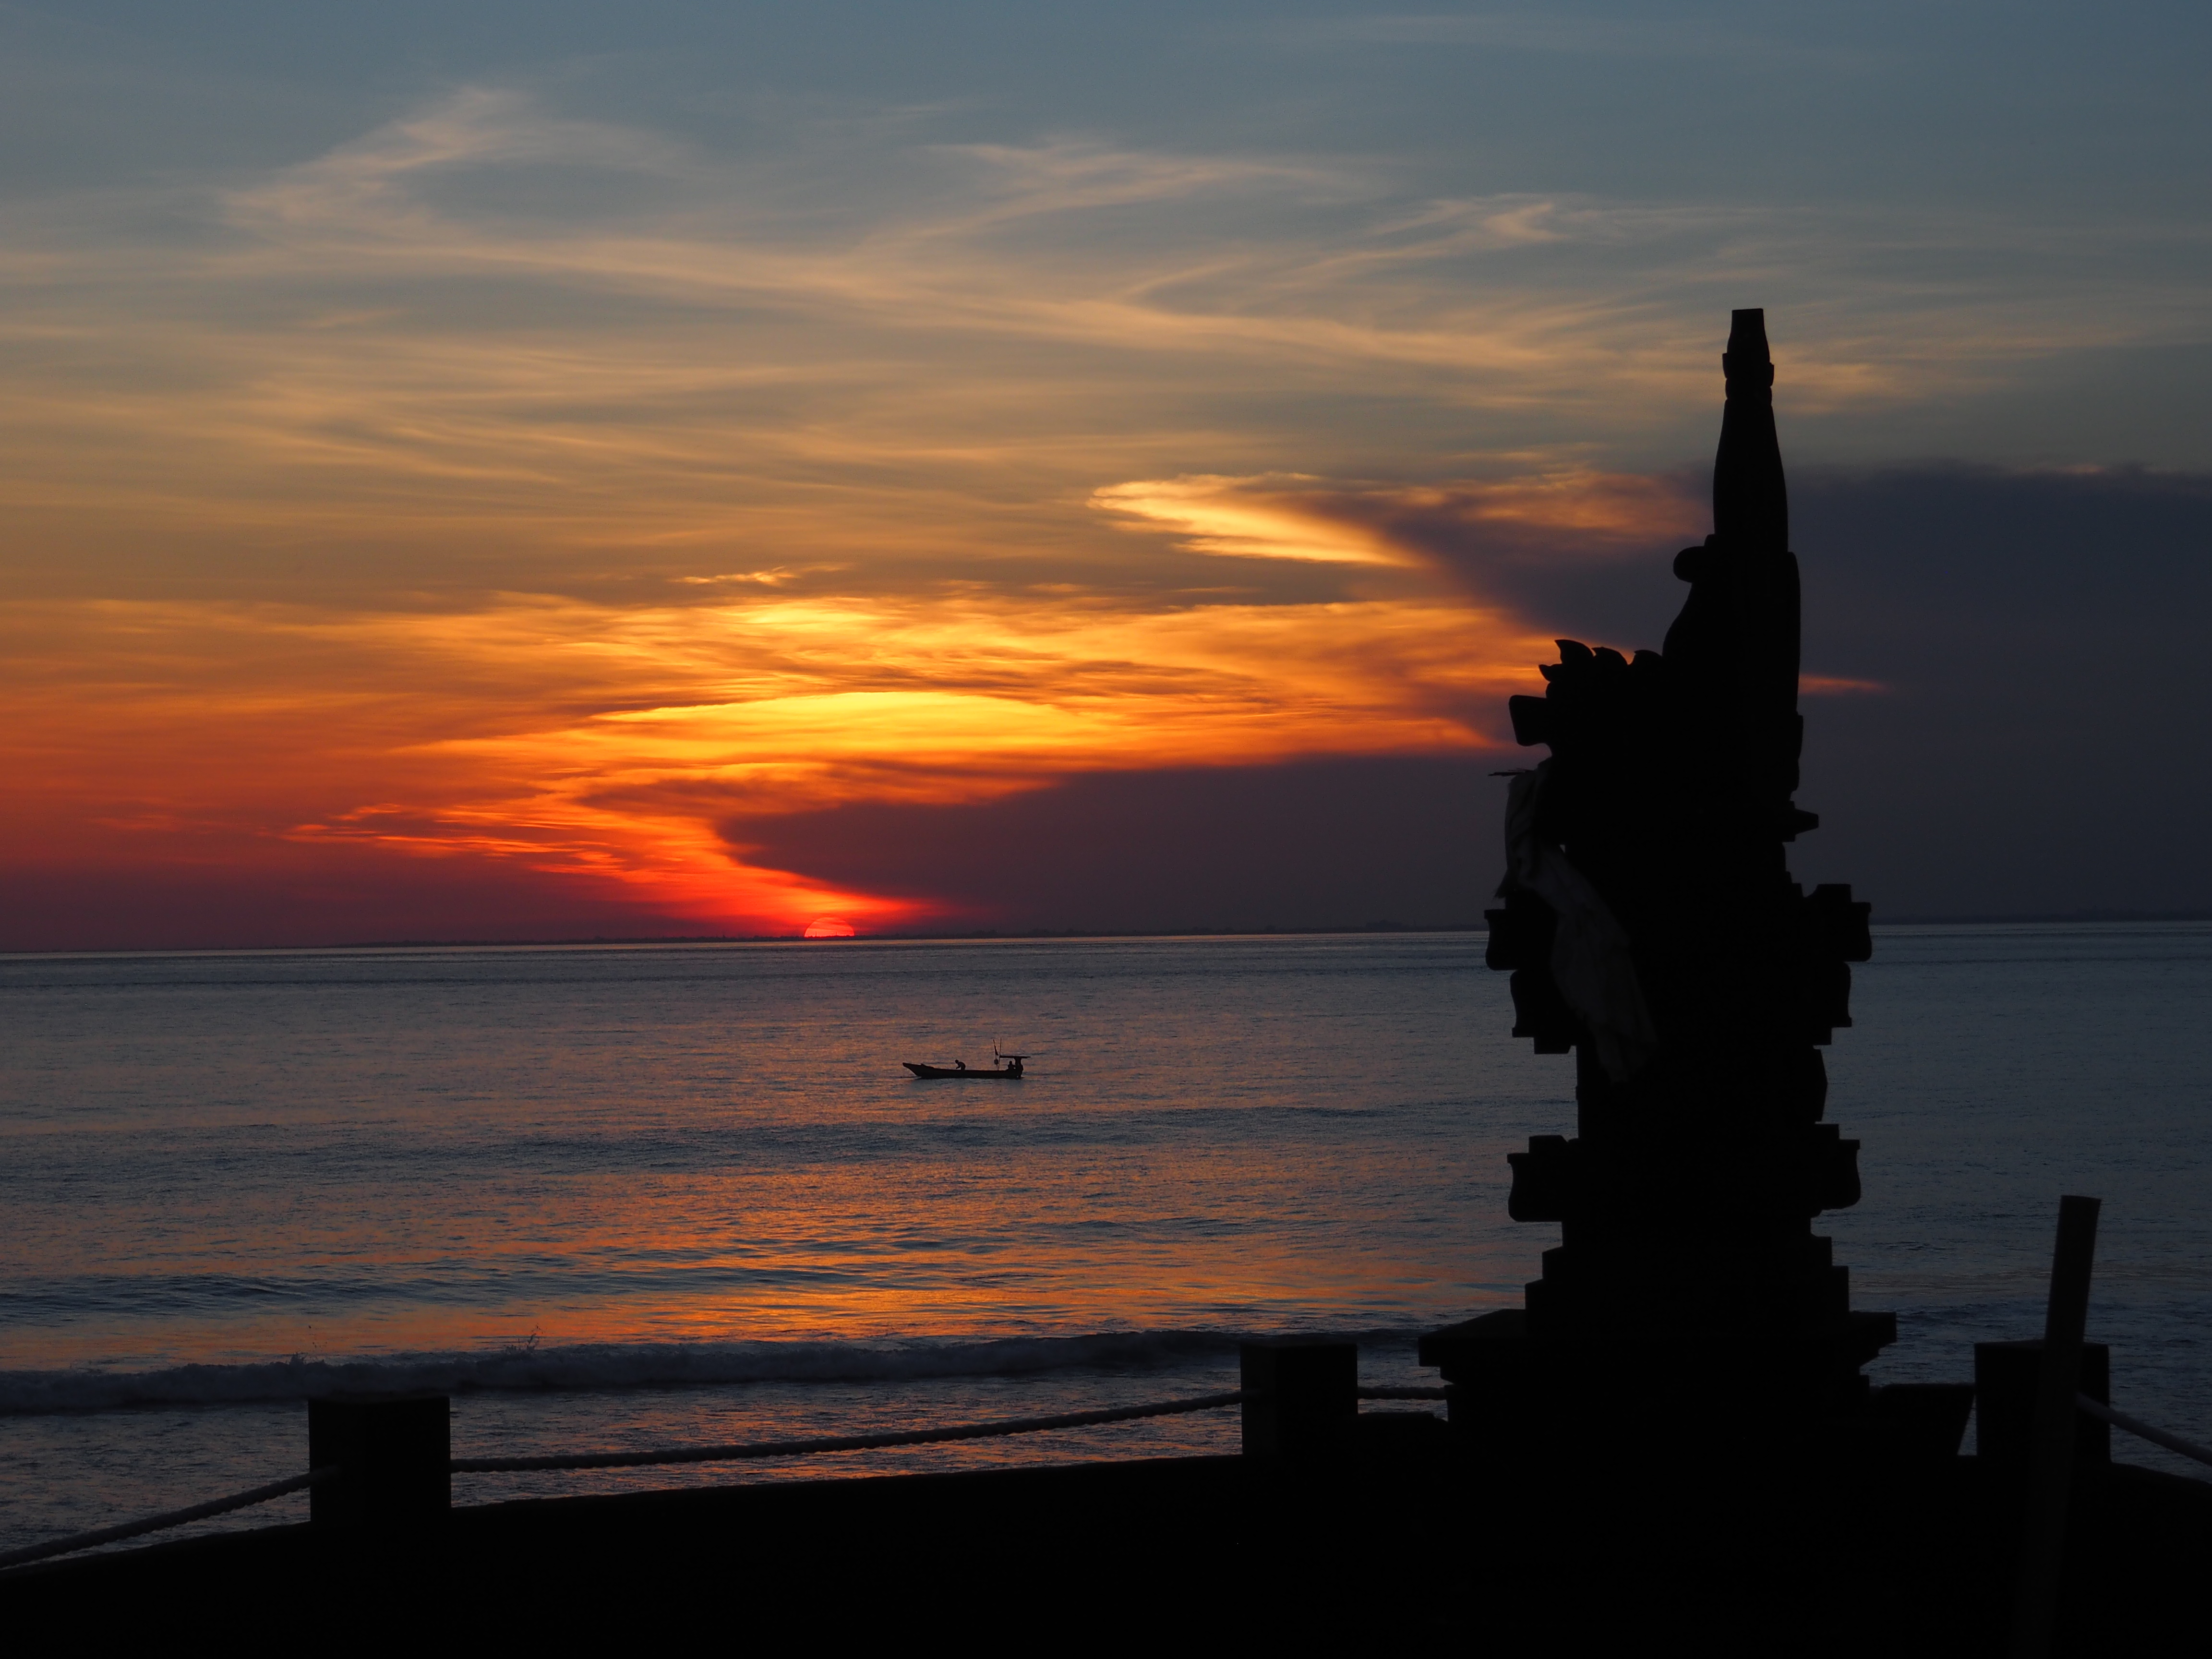 Click here for pictures of Bali.